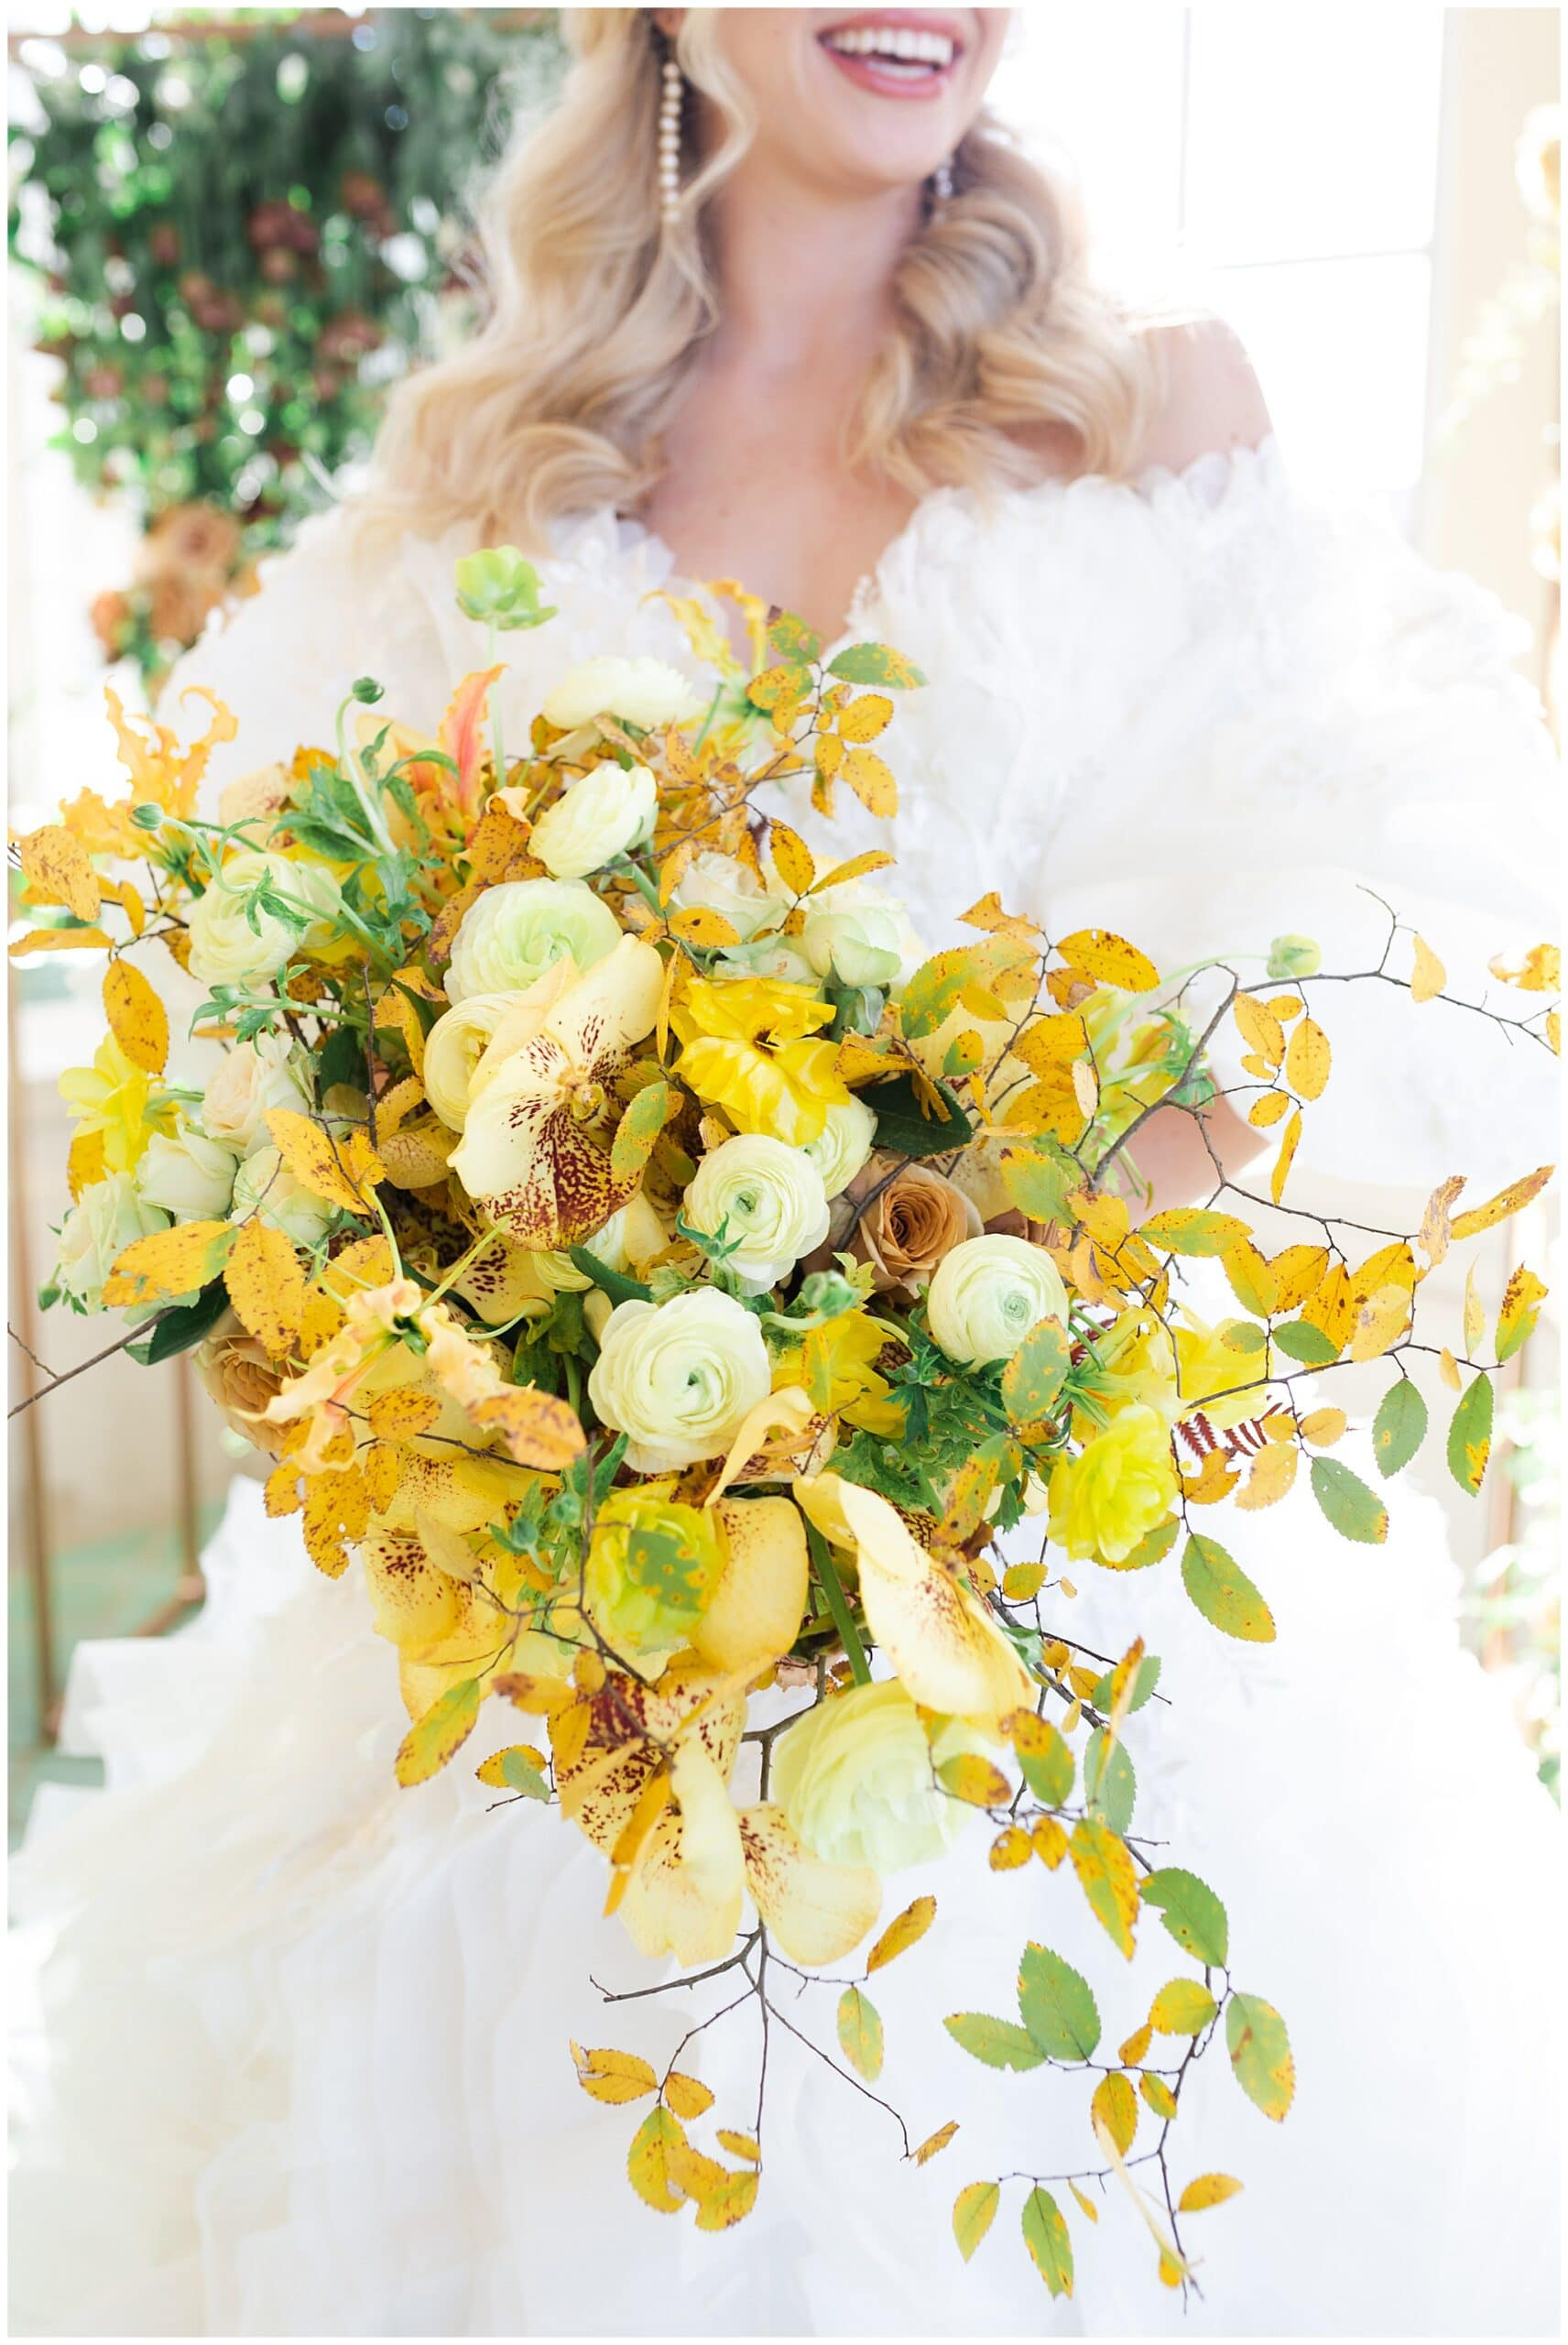 bridal bouquet on wedding day at The Olana in Hickory Creek, Texas in a yellow themed wedding captured by Swish and Click Photography